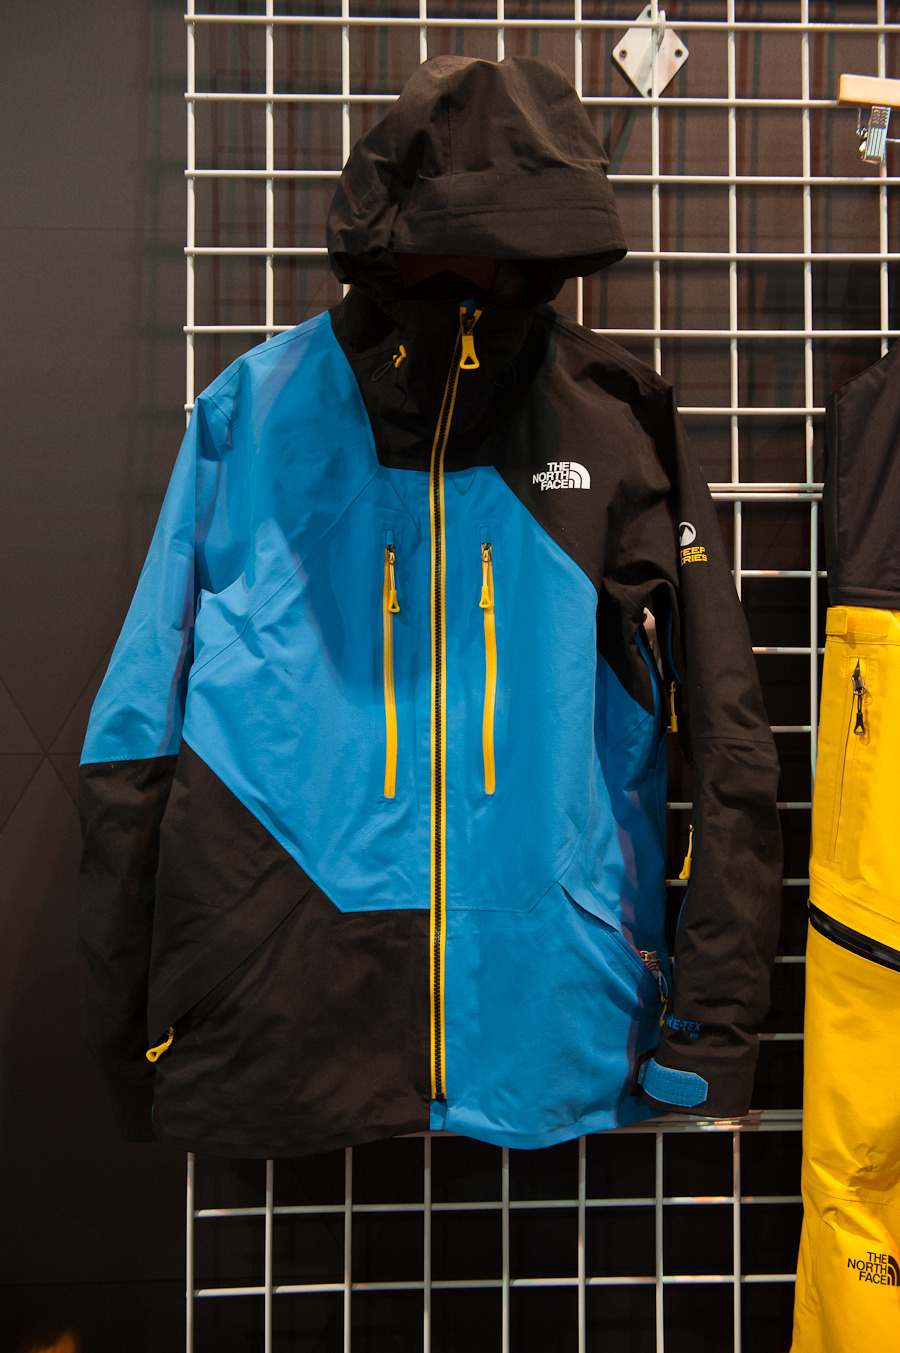 The pro athlete inspired Steep Series from The North Face features the Free Thinker jacket. It has GORE-TEX 3 layer pro, and an internal fleece-lined cell phone pocket. 